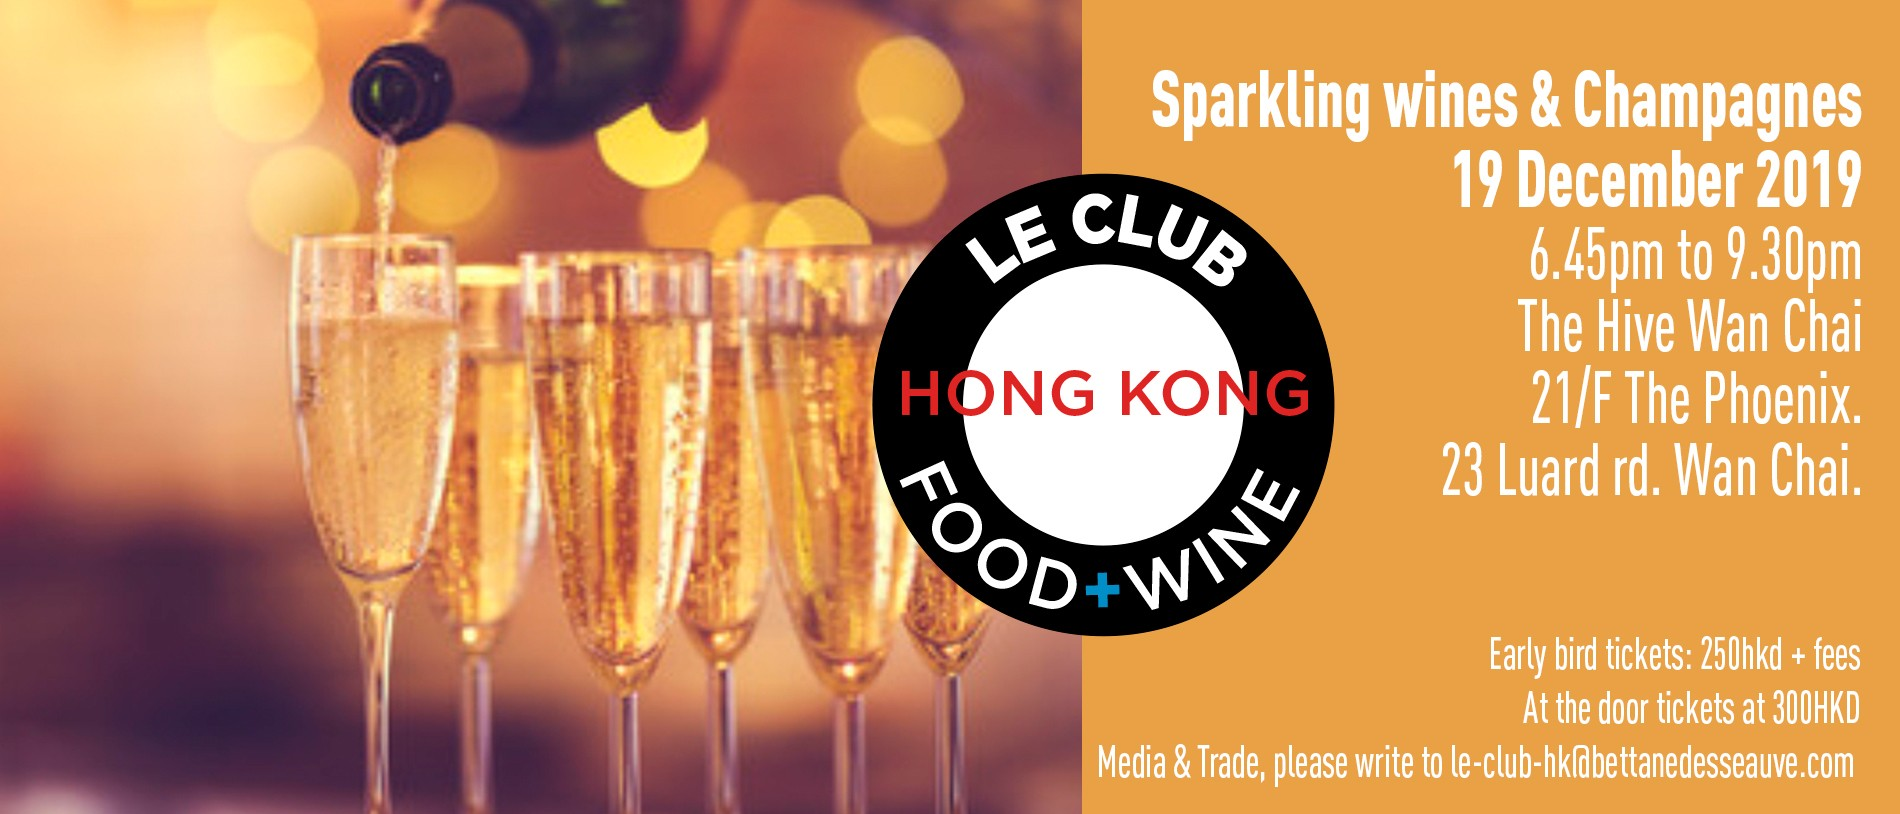 Le Club Food & Wine - 19 December 2019